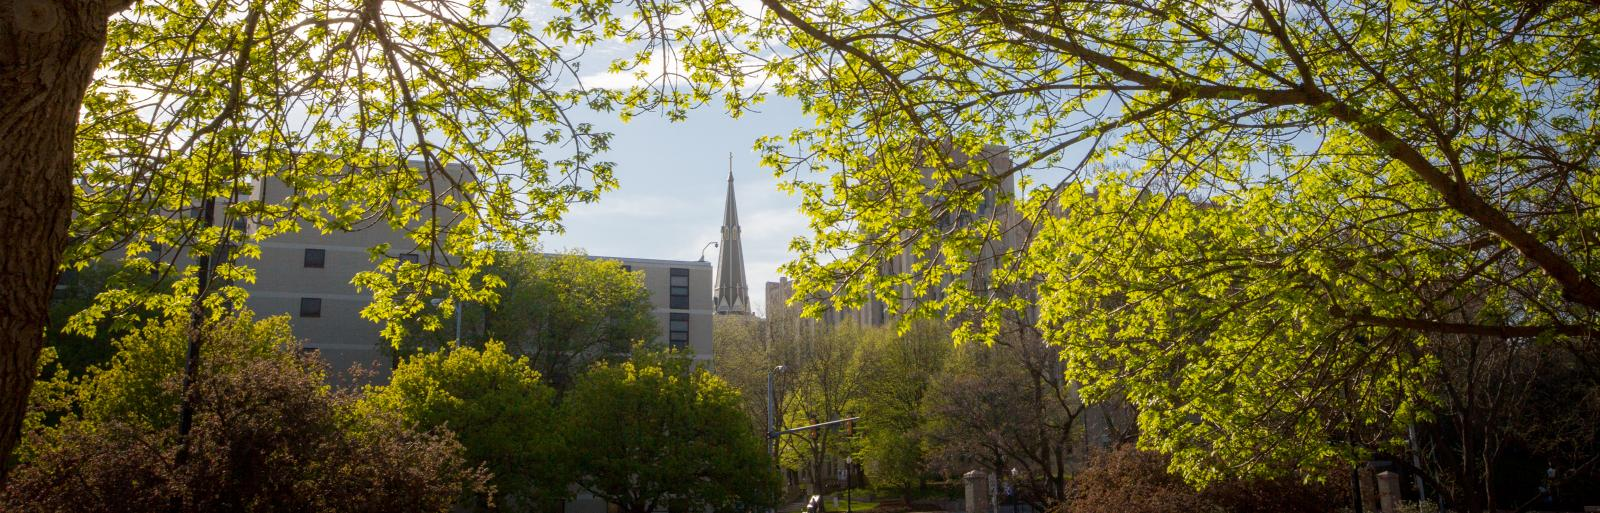 Steeple of St. John's Catholic Church seen through trees on Creighton University campus